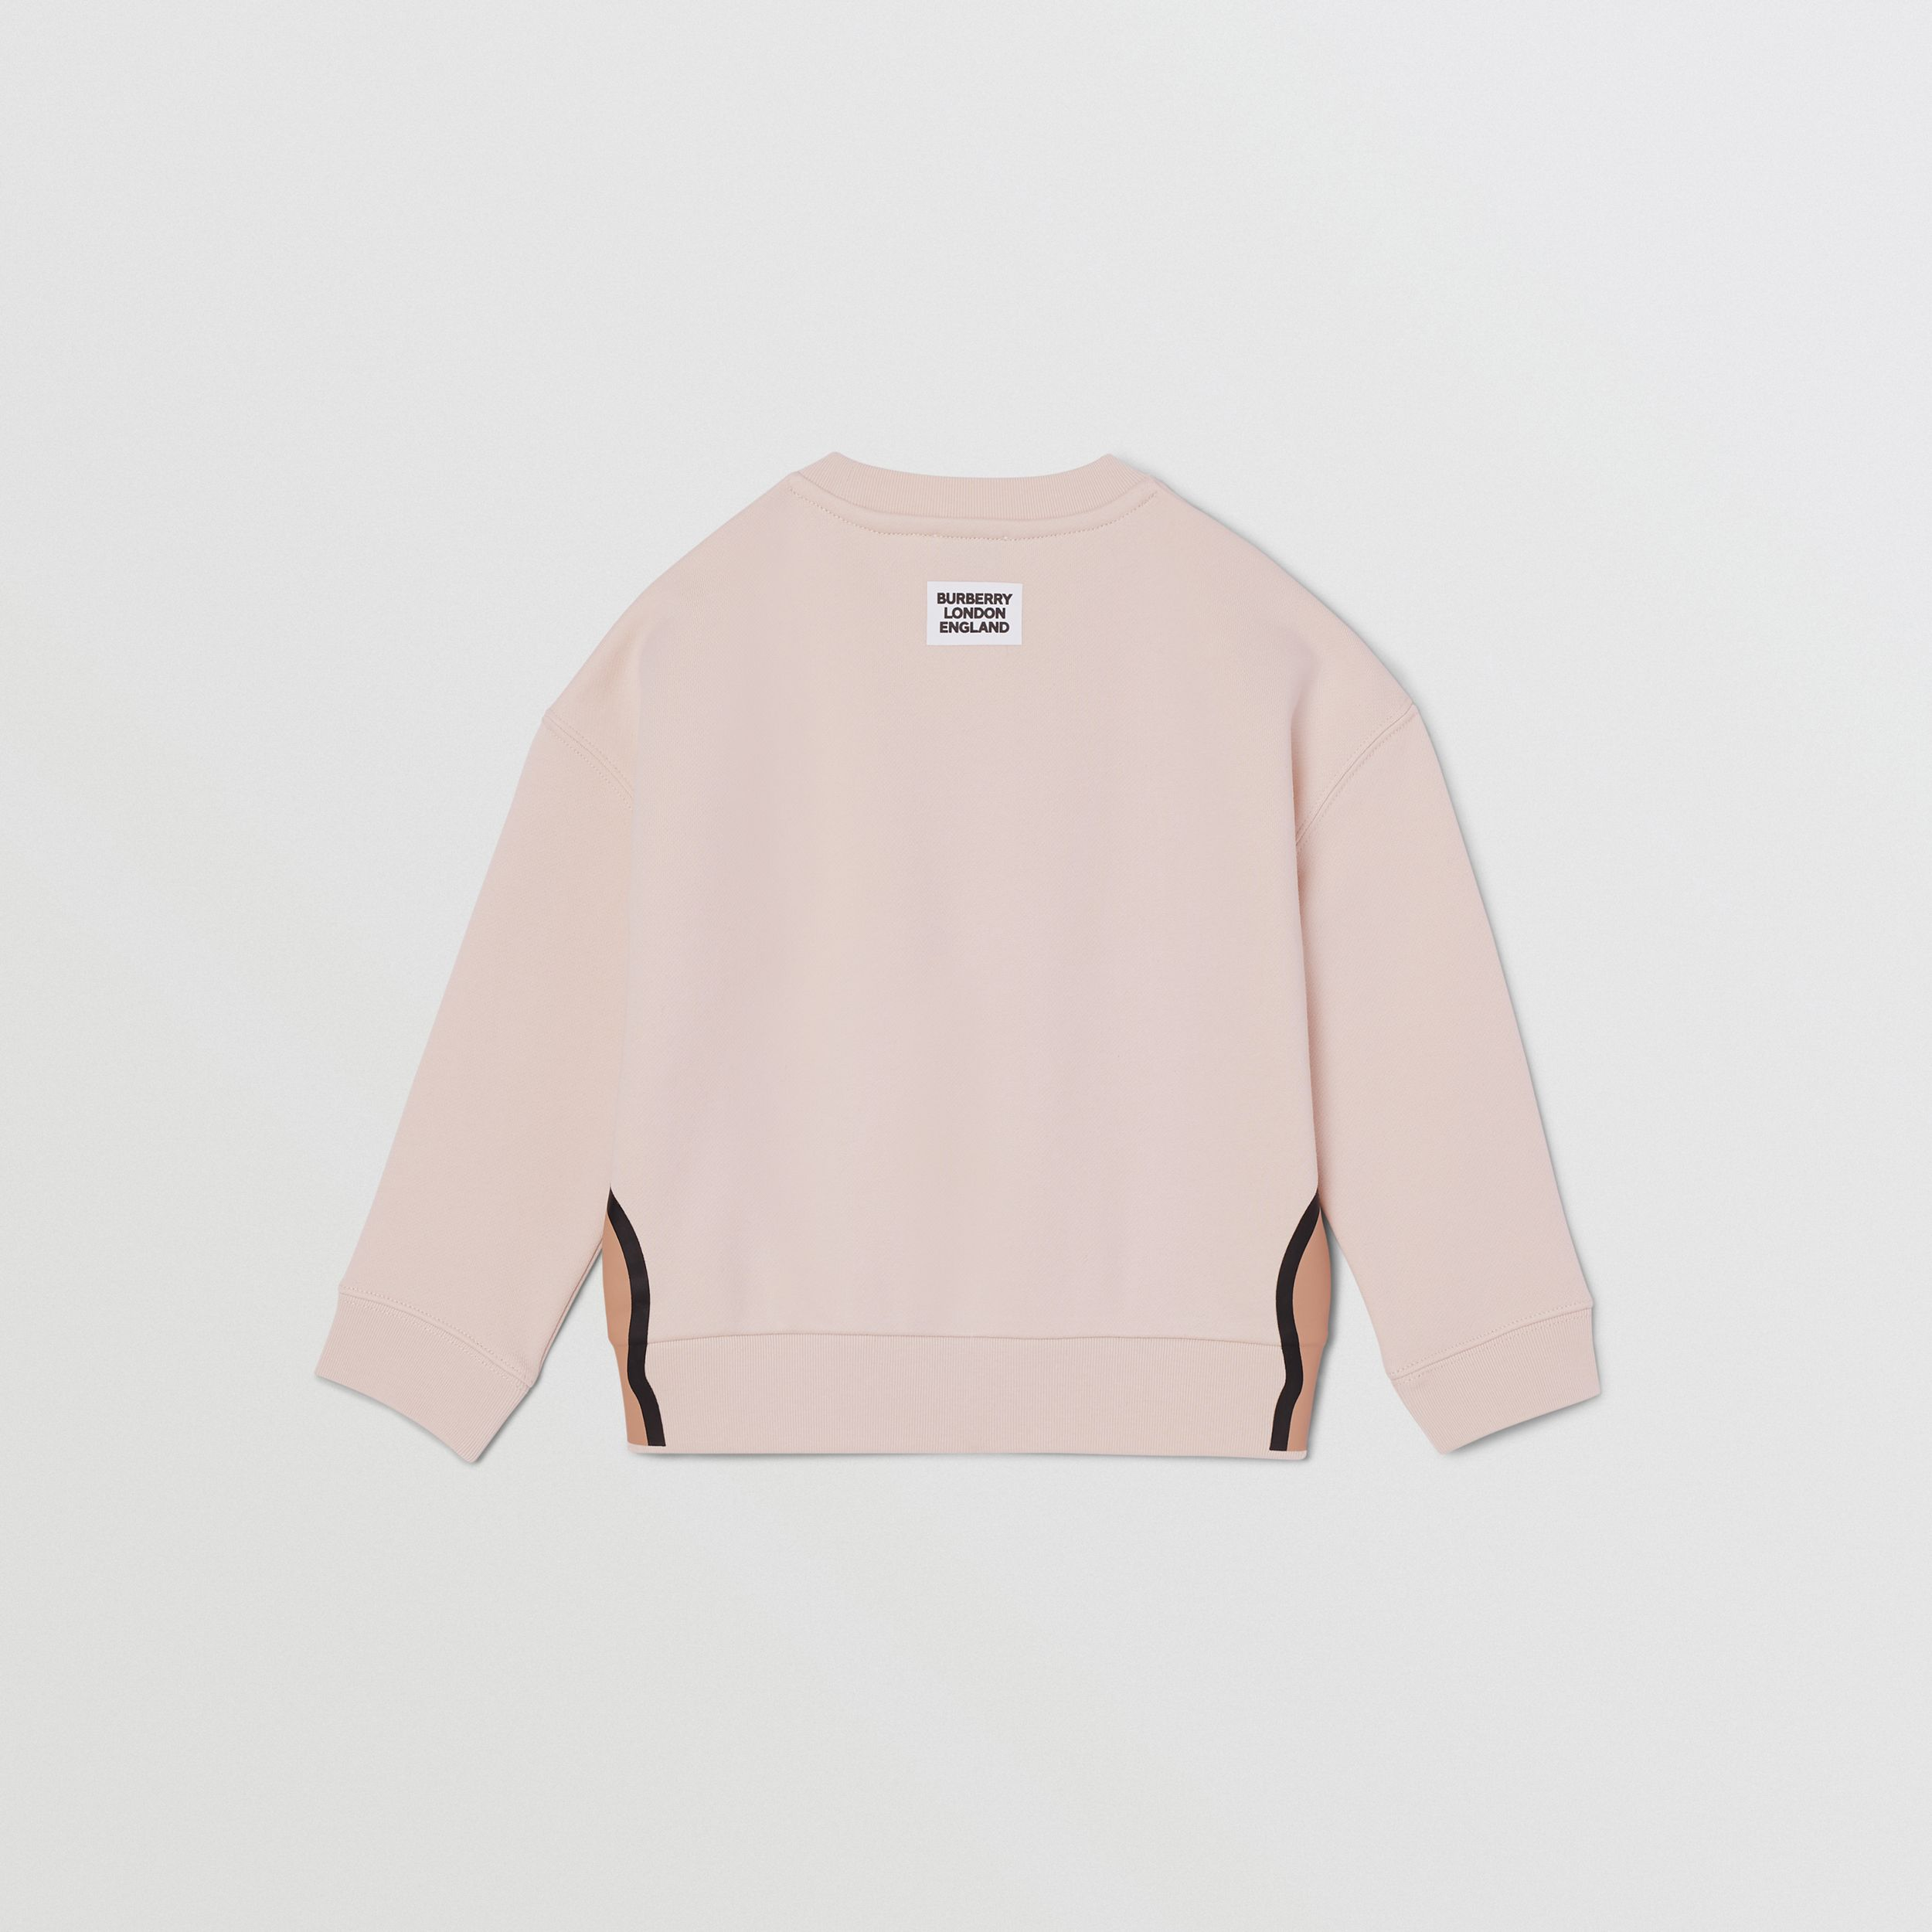 Unicorn Print Cotton Sweatshirt in Soft Pink | Burberry - 4